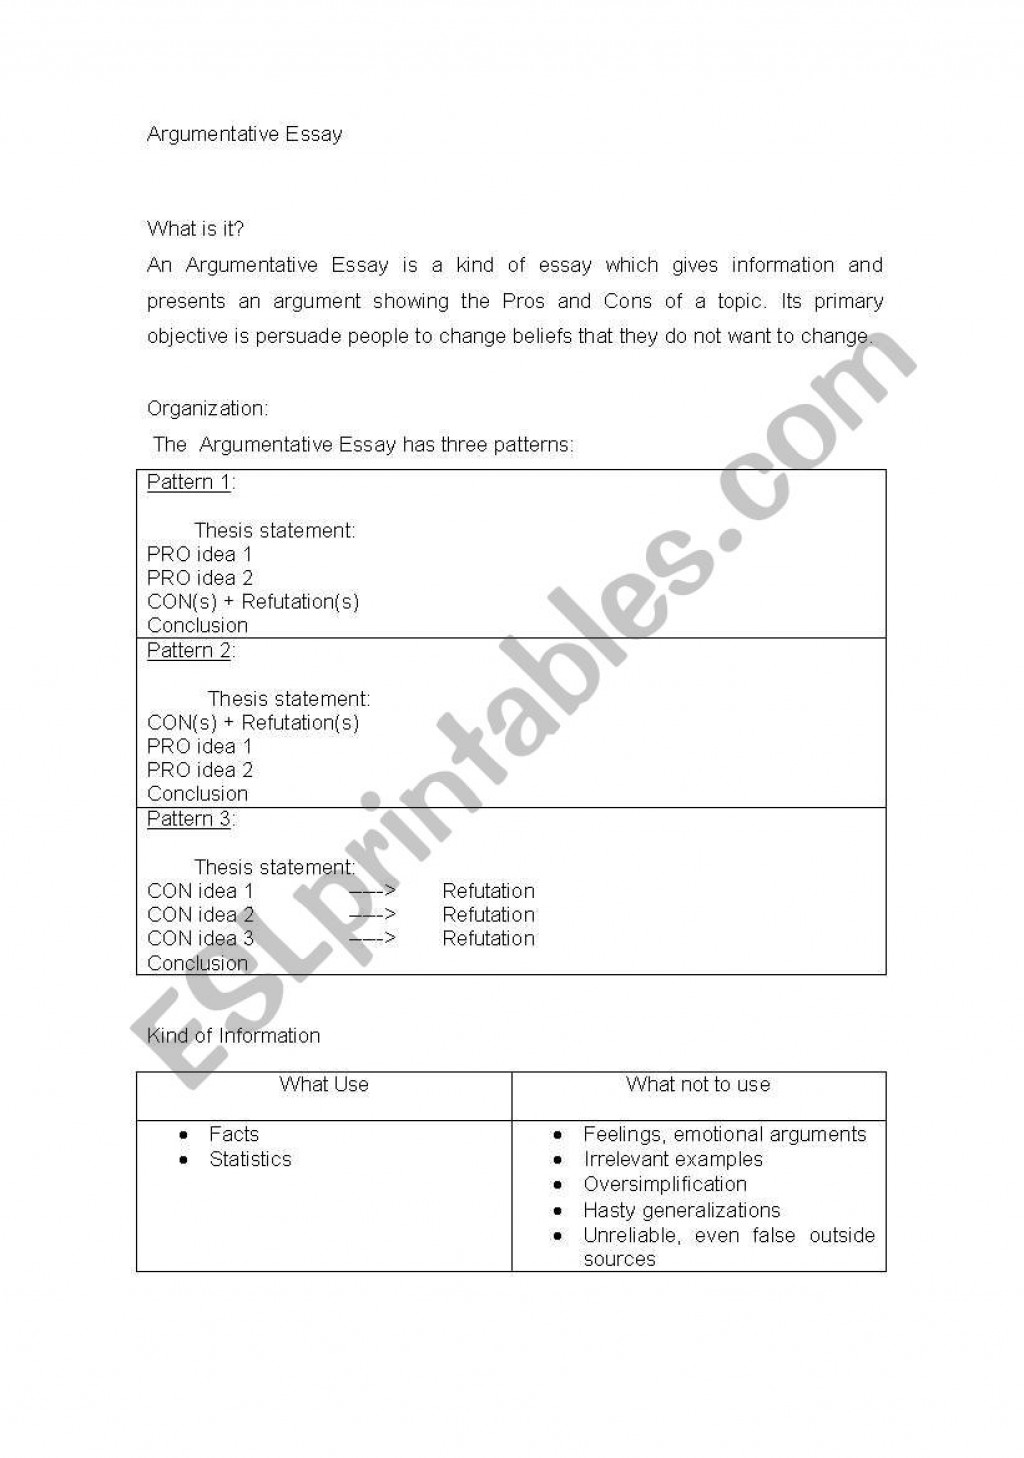 007 Argumentative Essay Esl Worksheet By Pixulina What Is An Ppt 578260 1 Brainly Definition Pdf Outlinet Topics And Its Parts Example Frightening Powerpoint Presentation Slides For Middle School Large